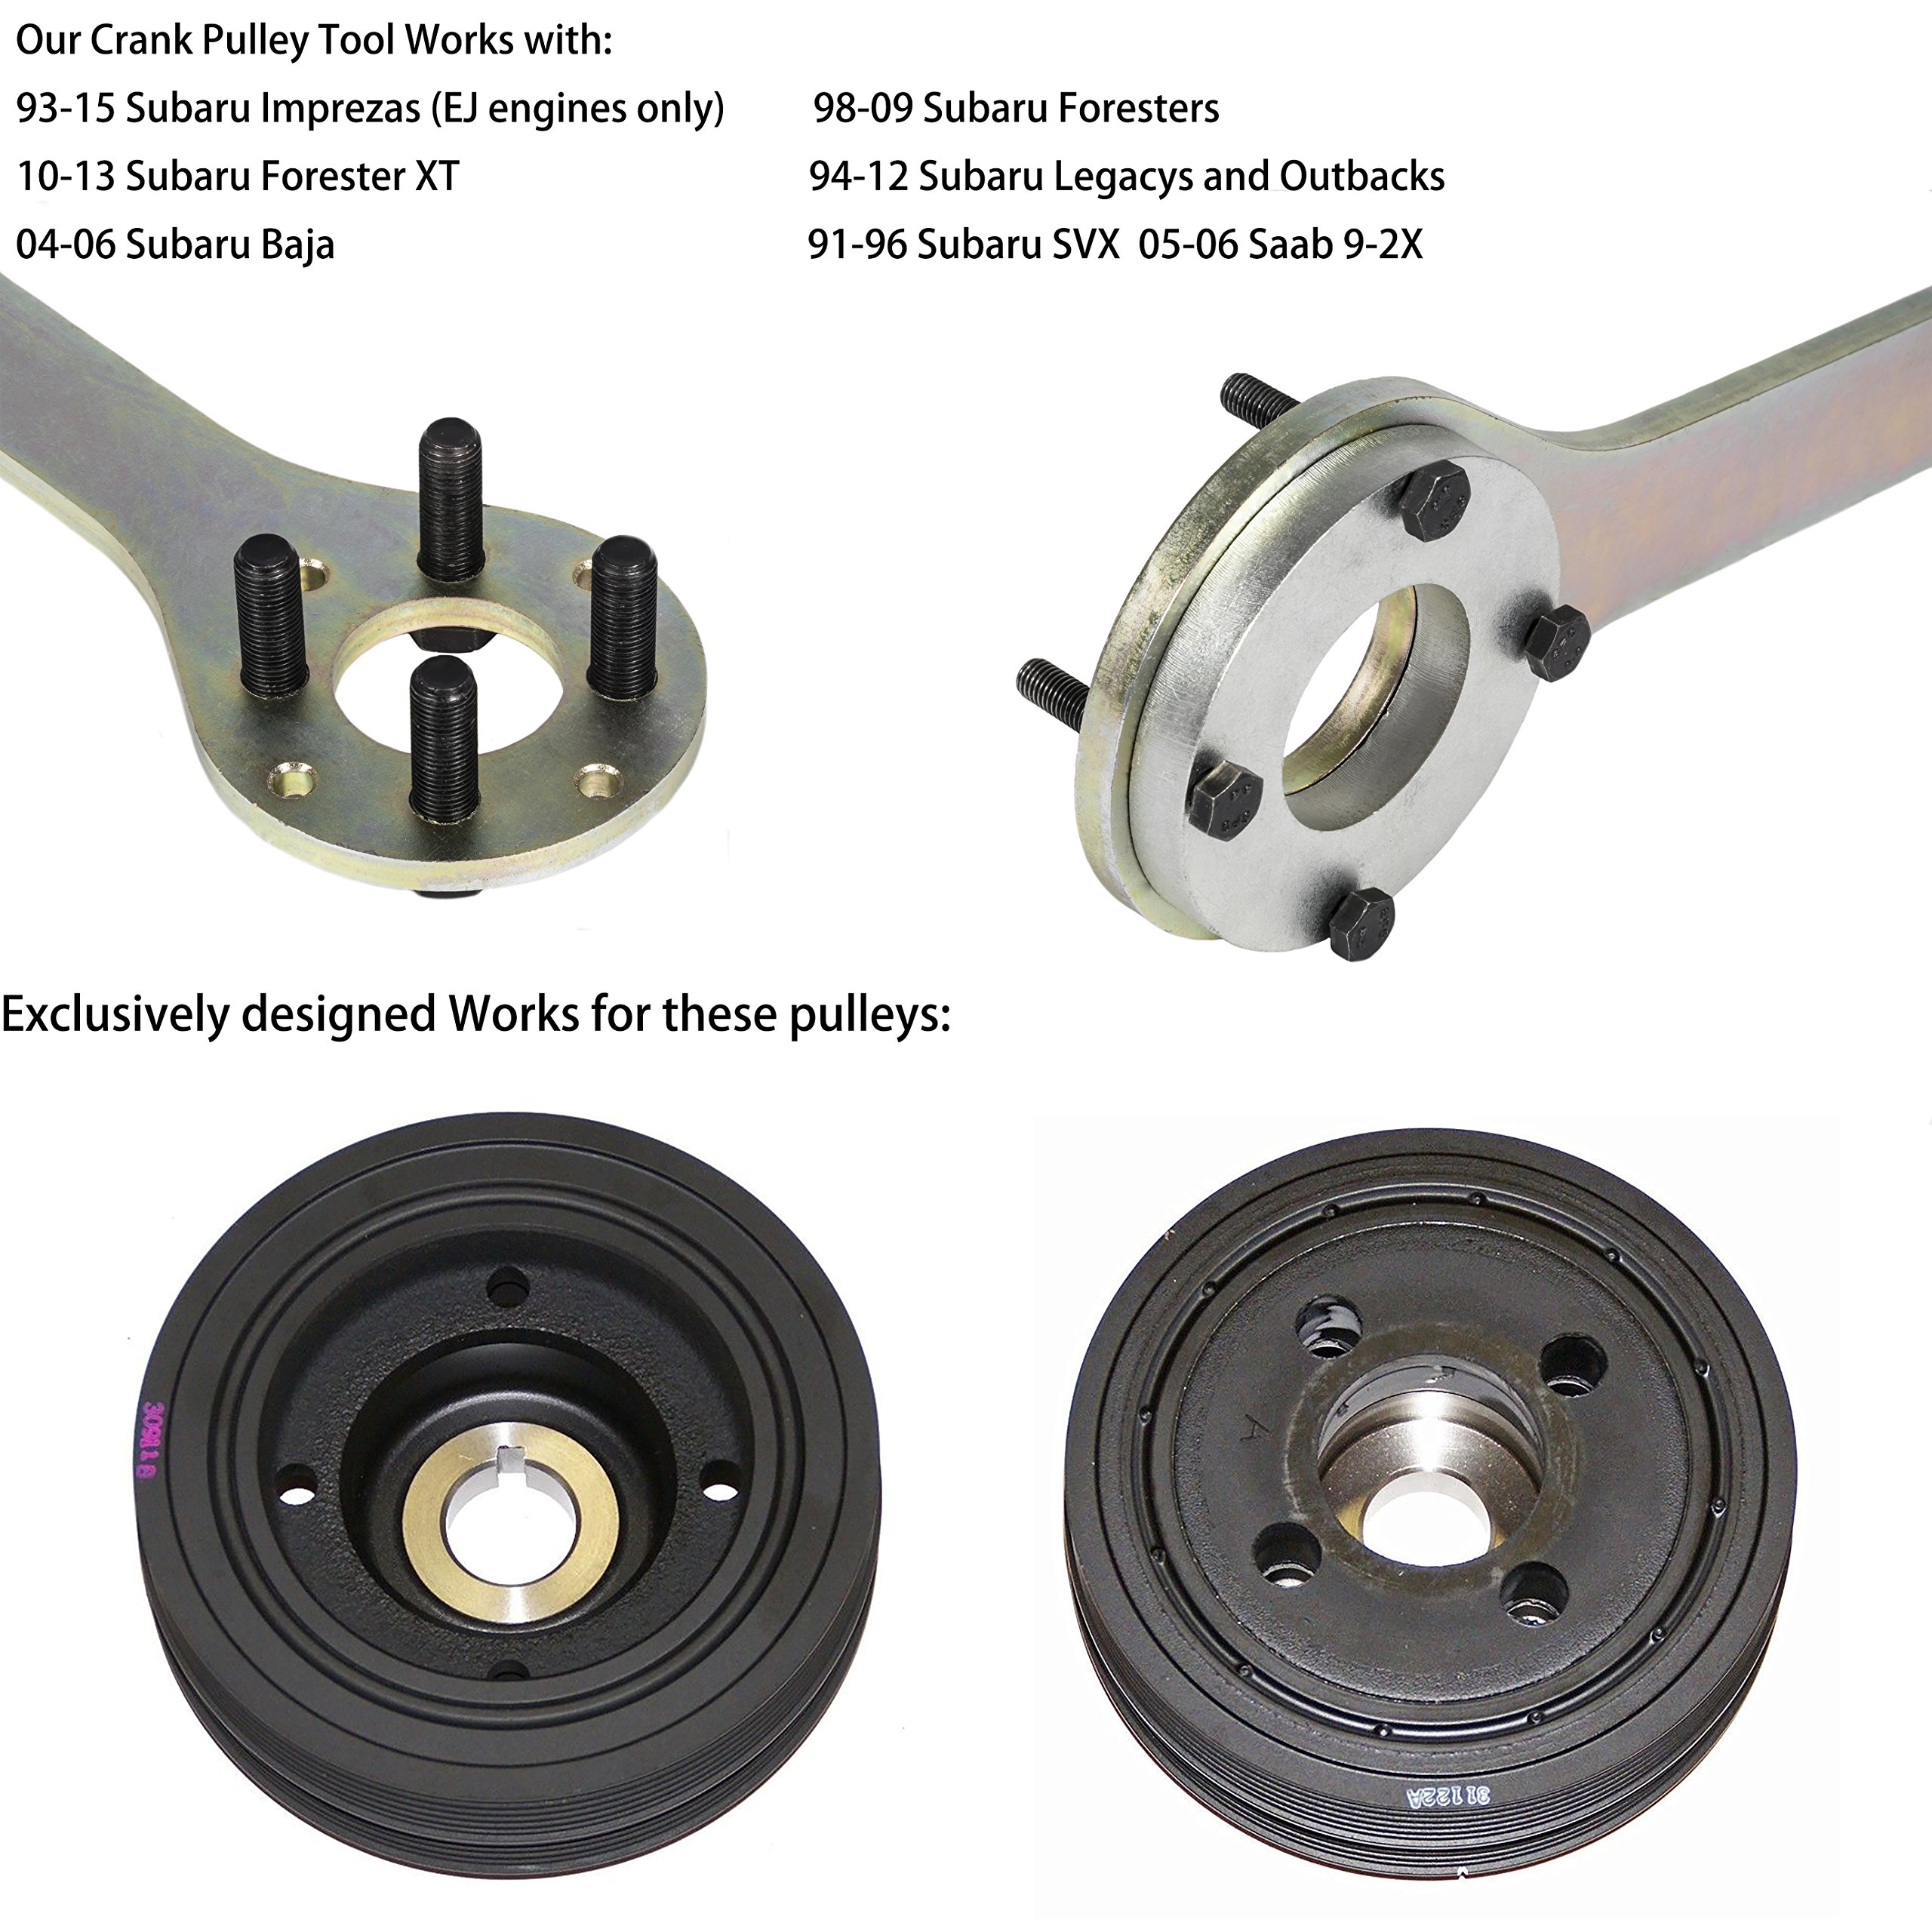 EnRand New Version Crank Pulley Tool for Subaru by EnRand (Image #2)